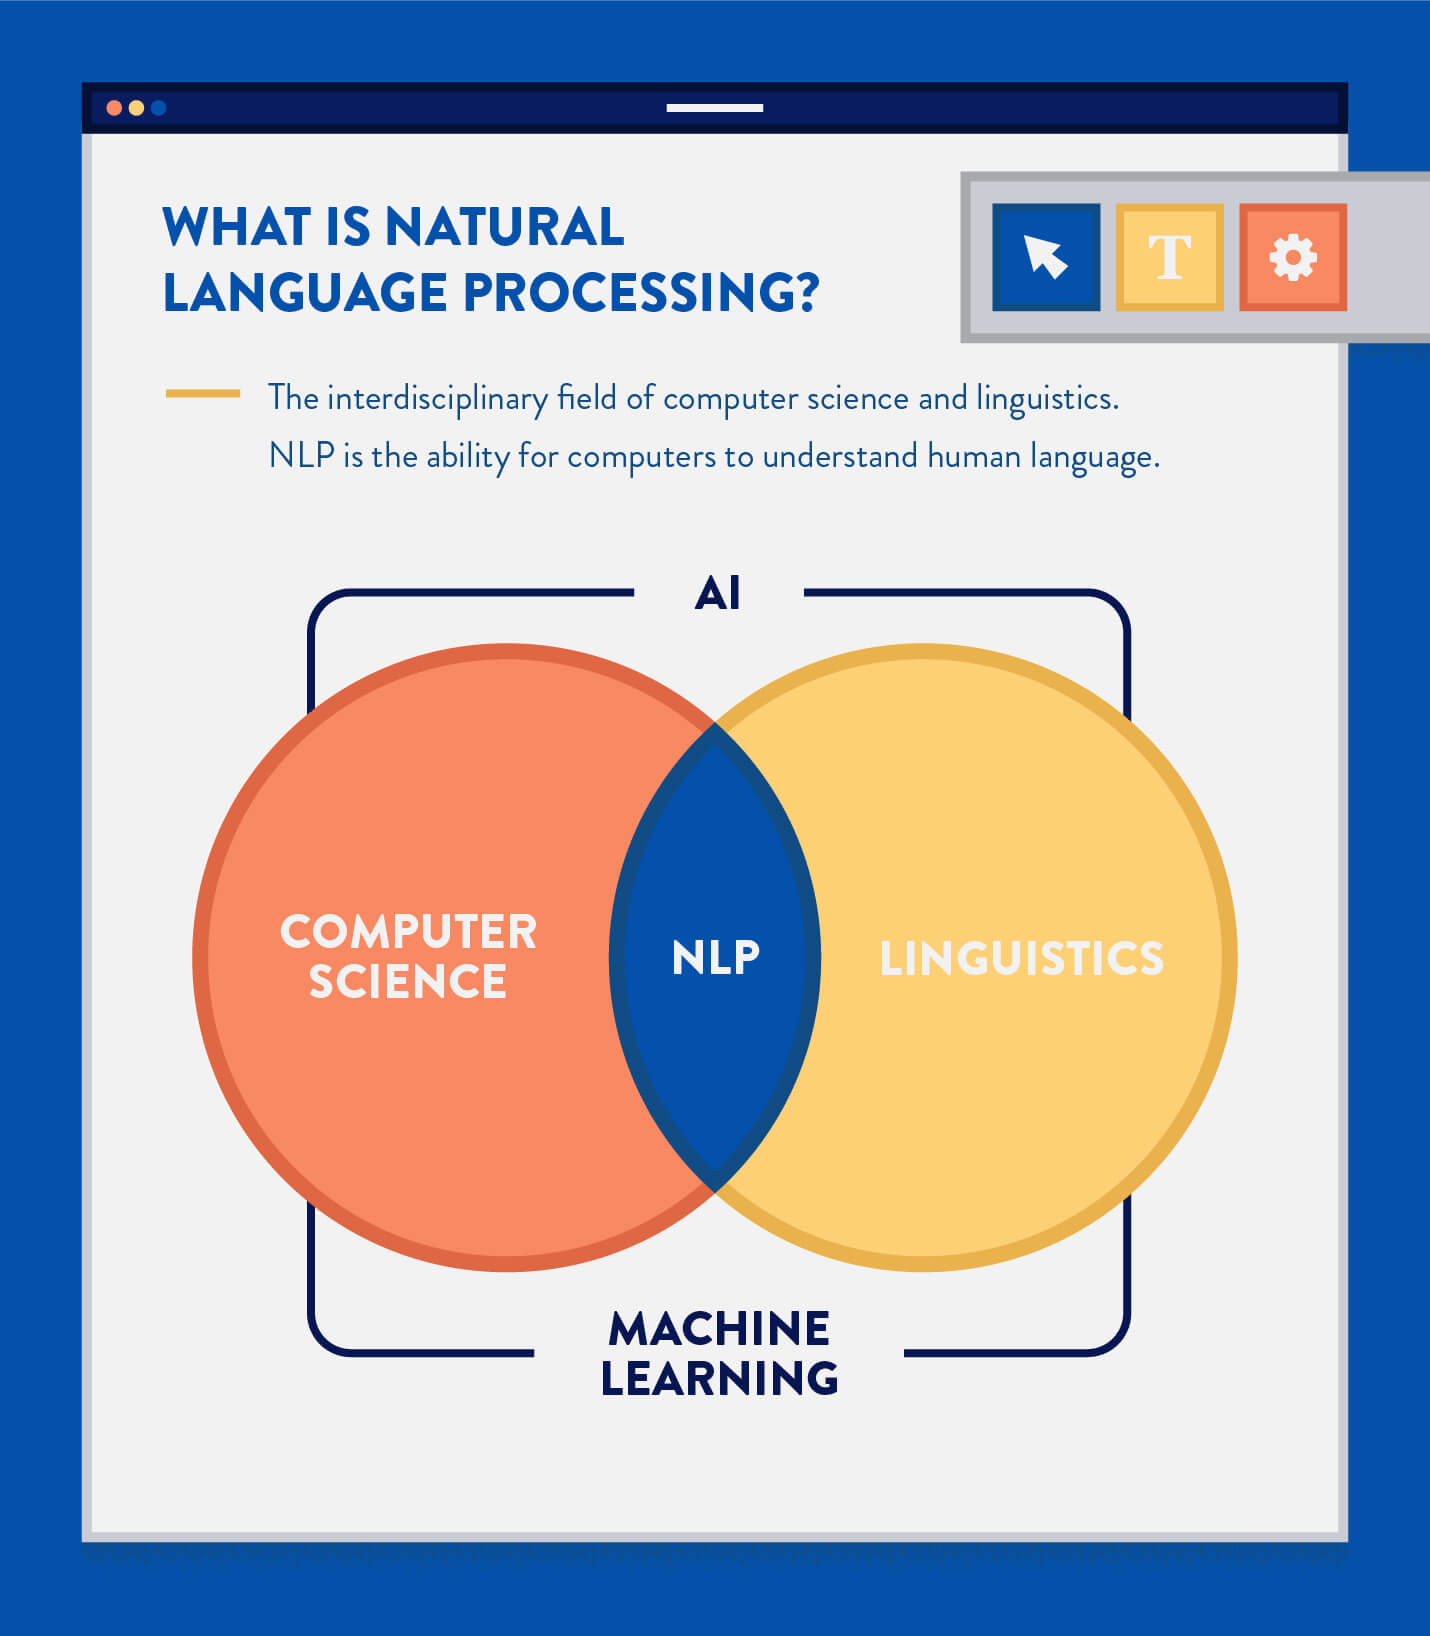 natural language processing defined with venn diagram of computer science, linguistics, AI, and Machine Learning